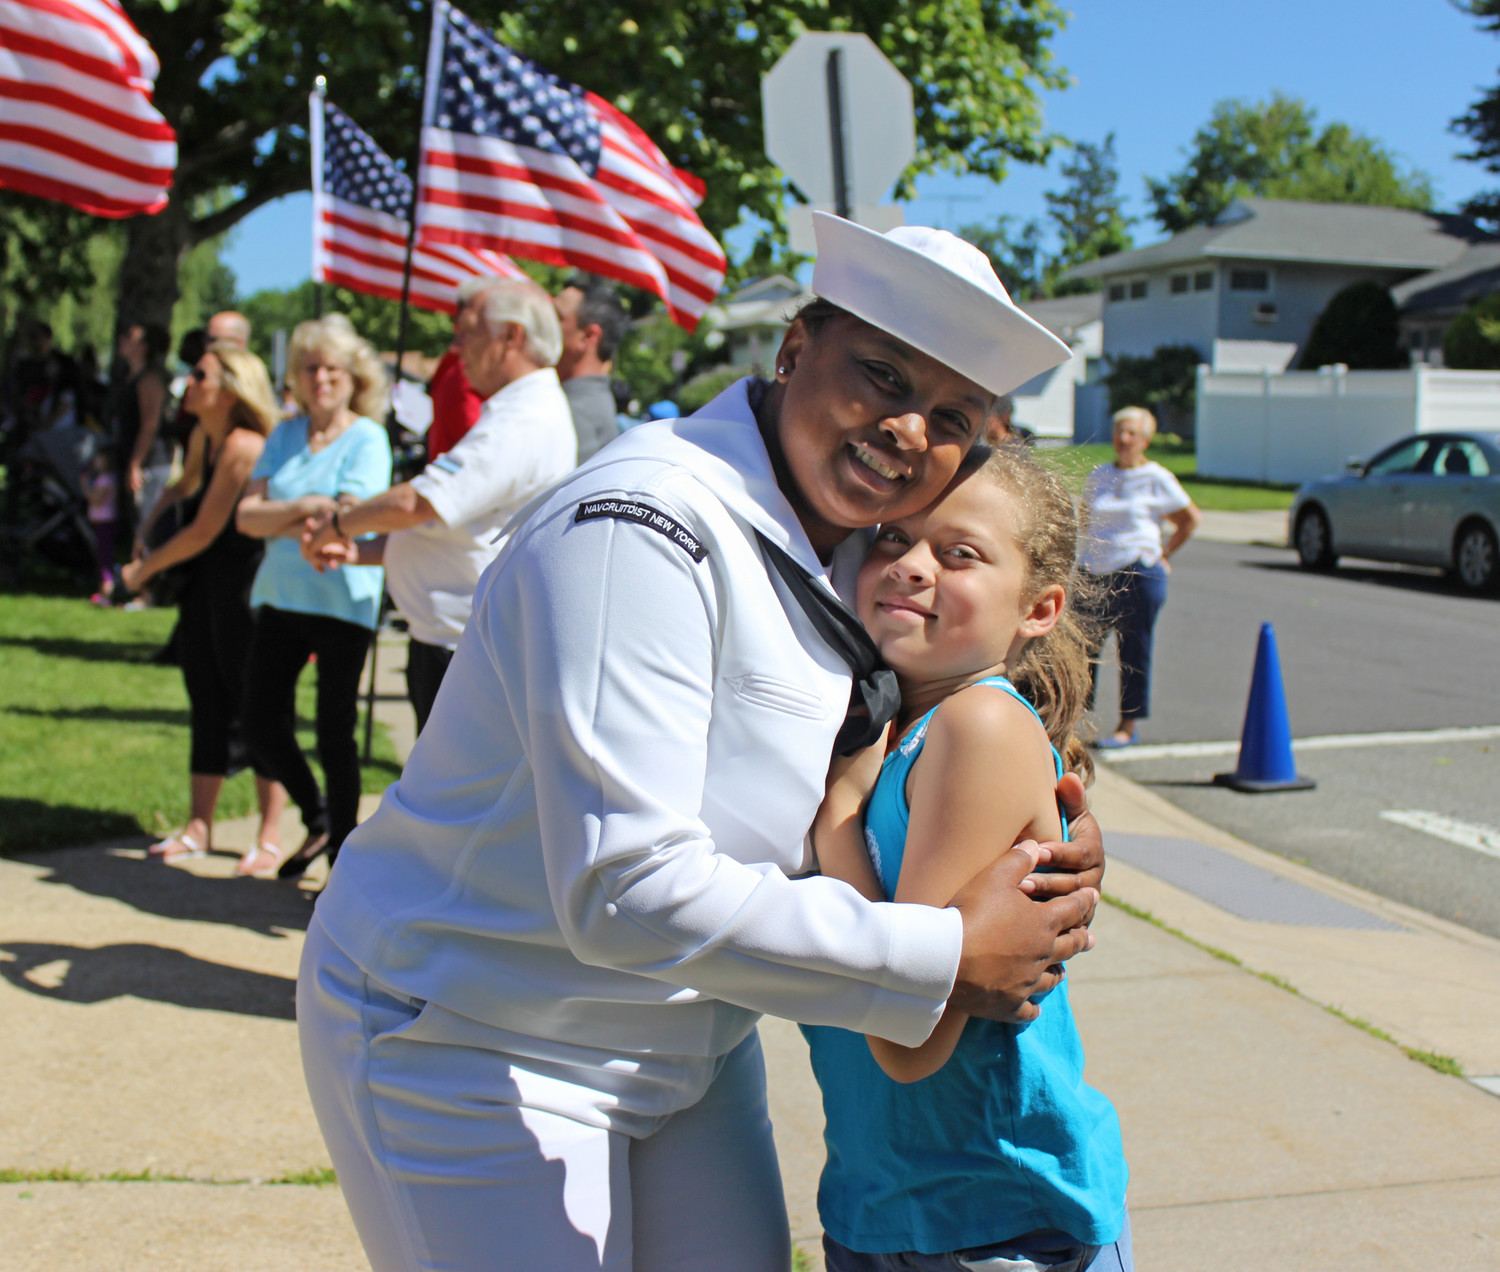 Officer Tara S. Virgin represented the U.S. Navy at the Flag Day ceremony at Barnum Woods, where her daughter Oriana, 9, is a student.